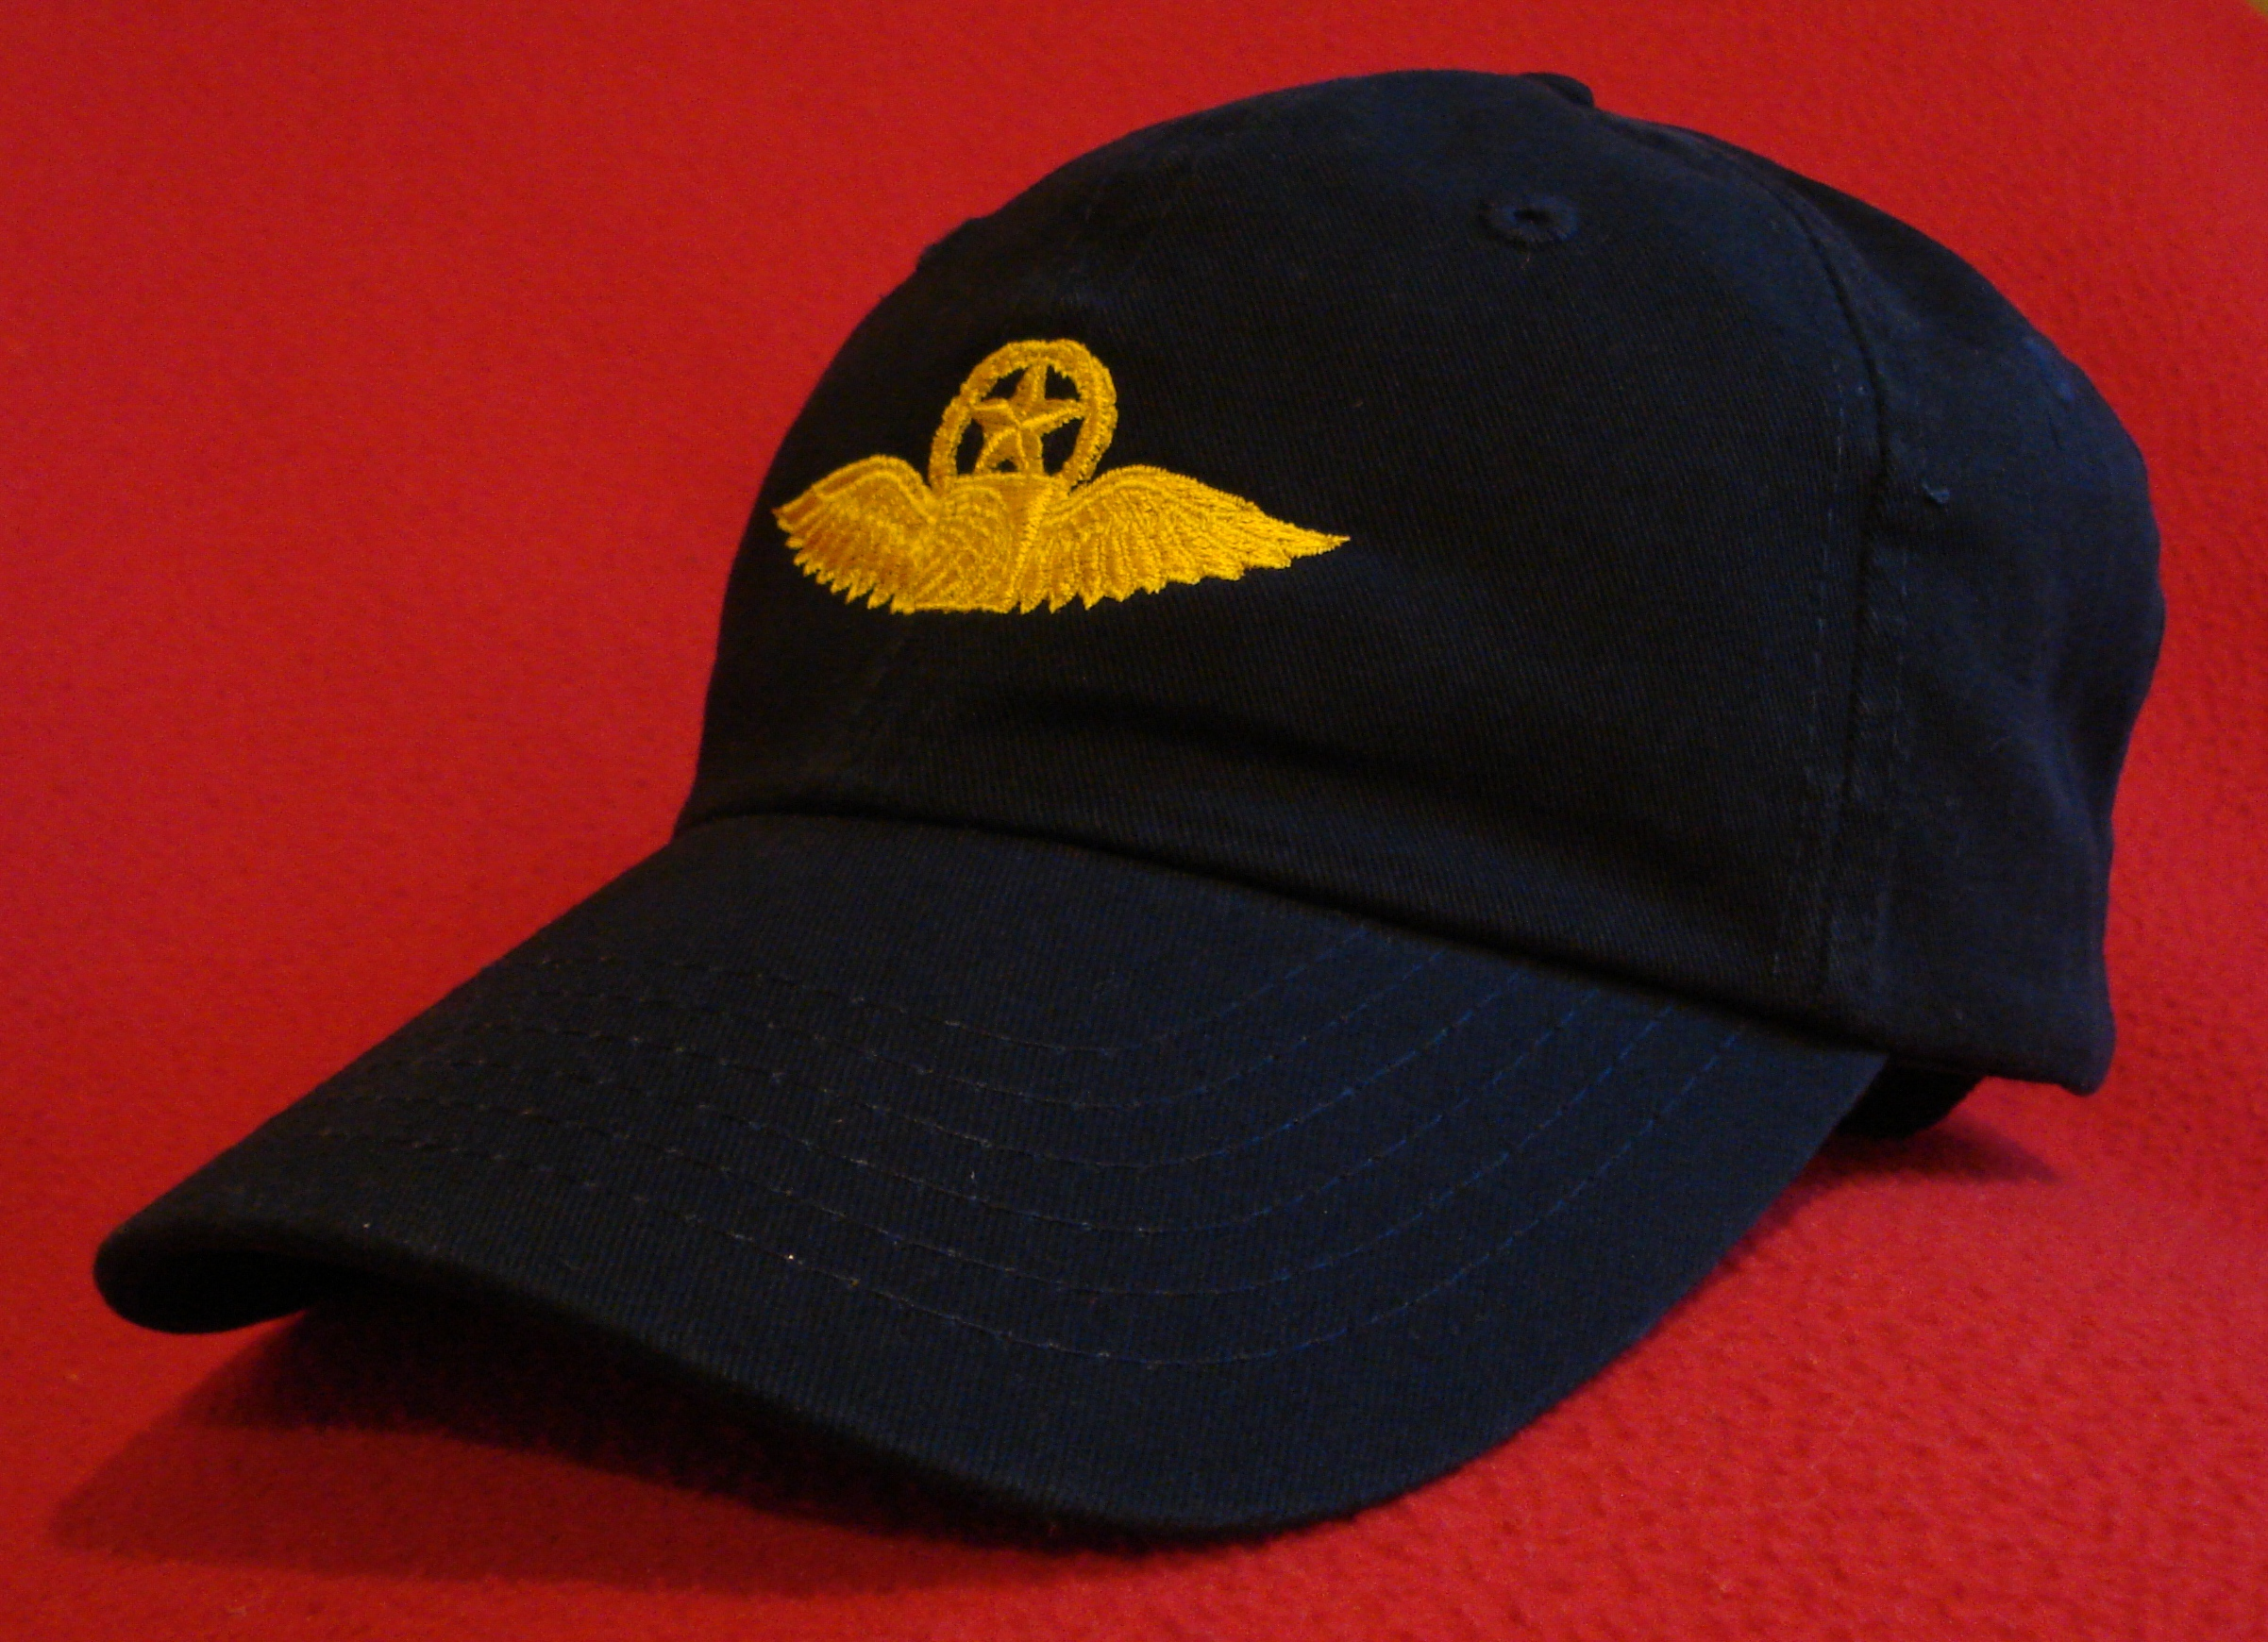 Pilot Ball Caps Sells Quality Continental Airlines Pilot